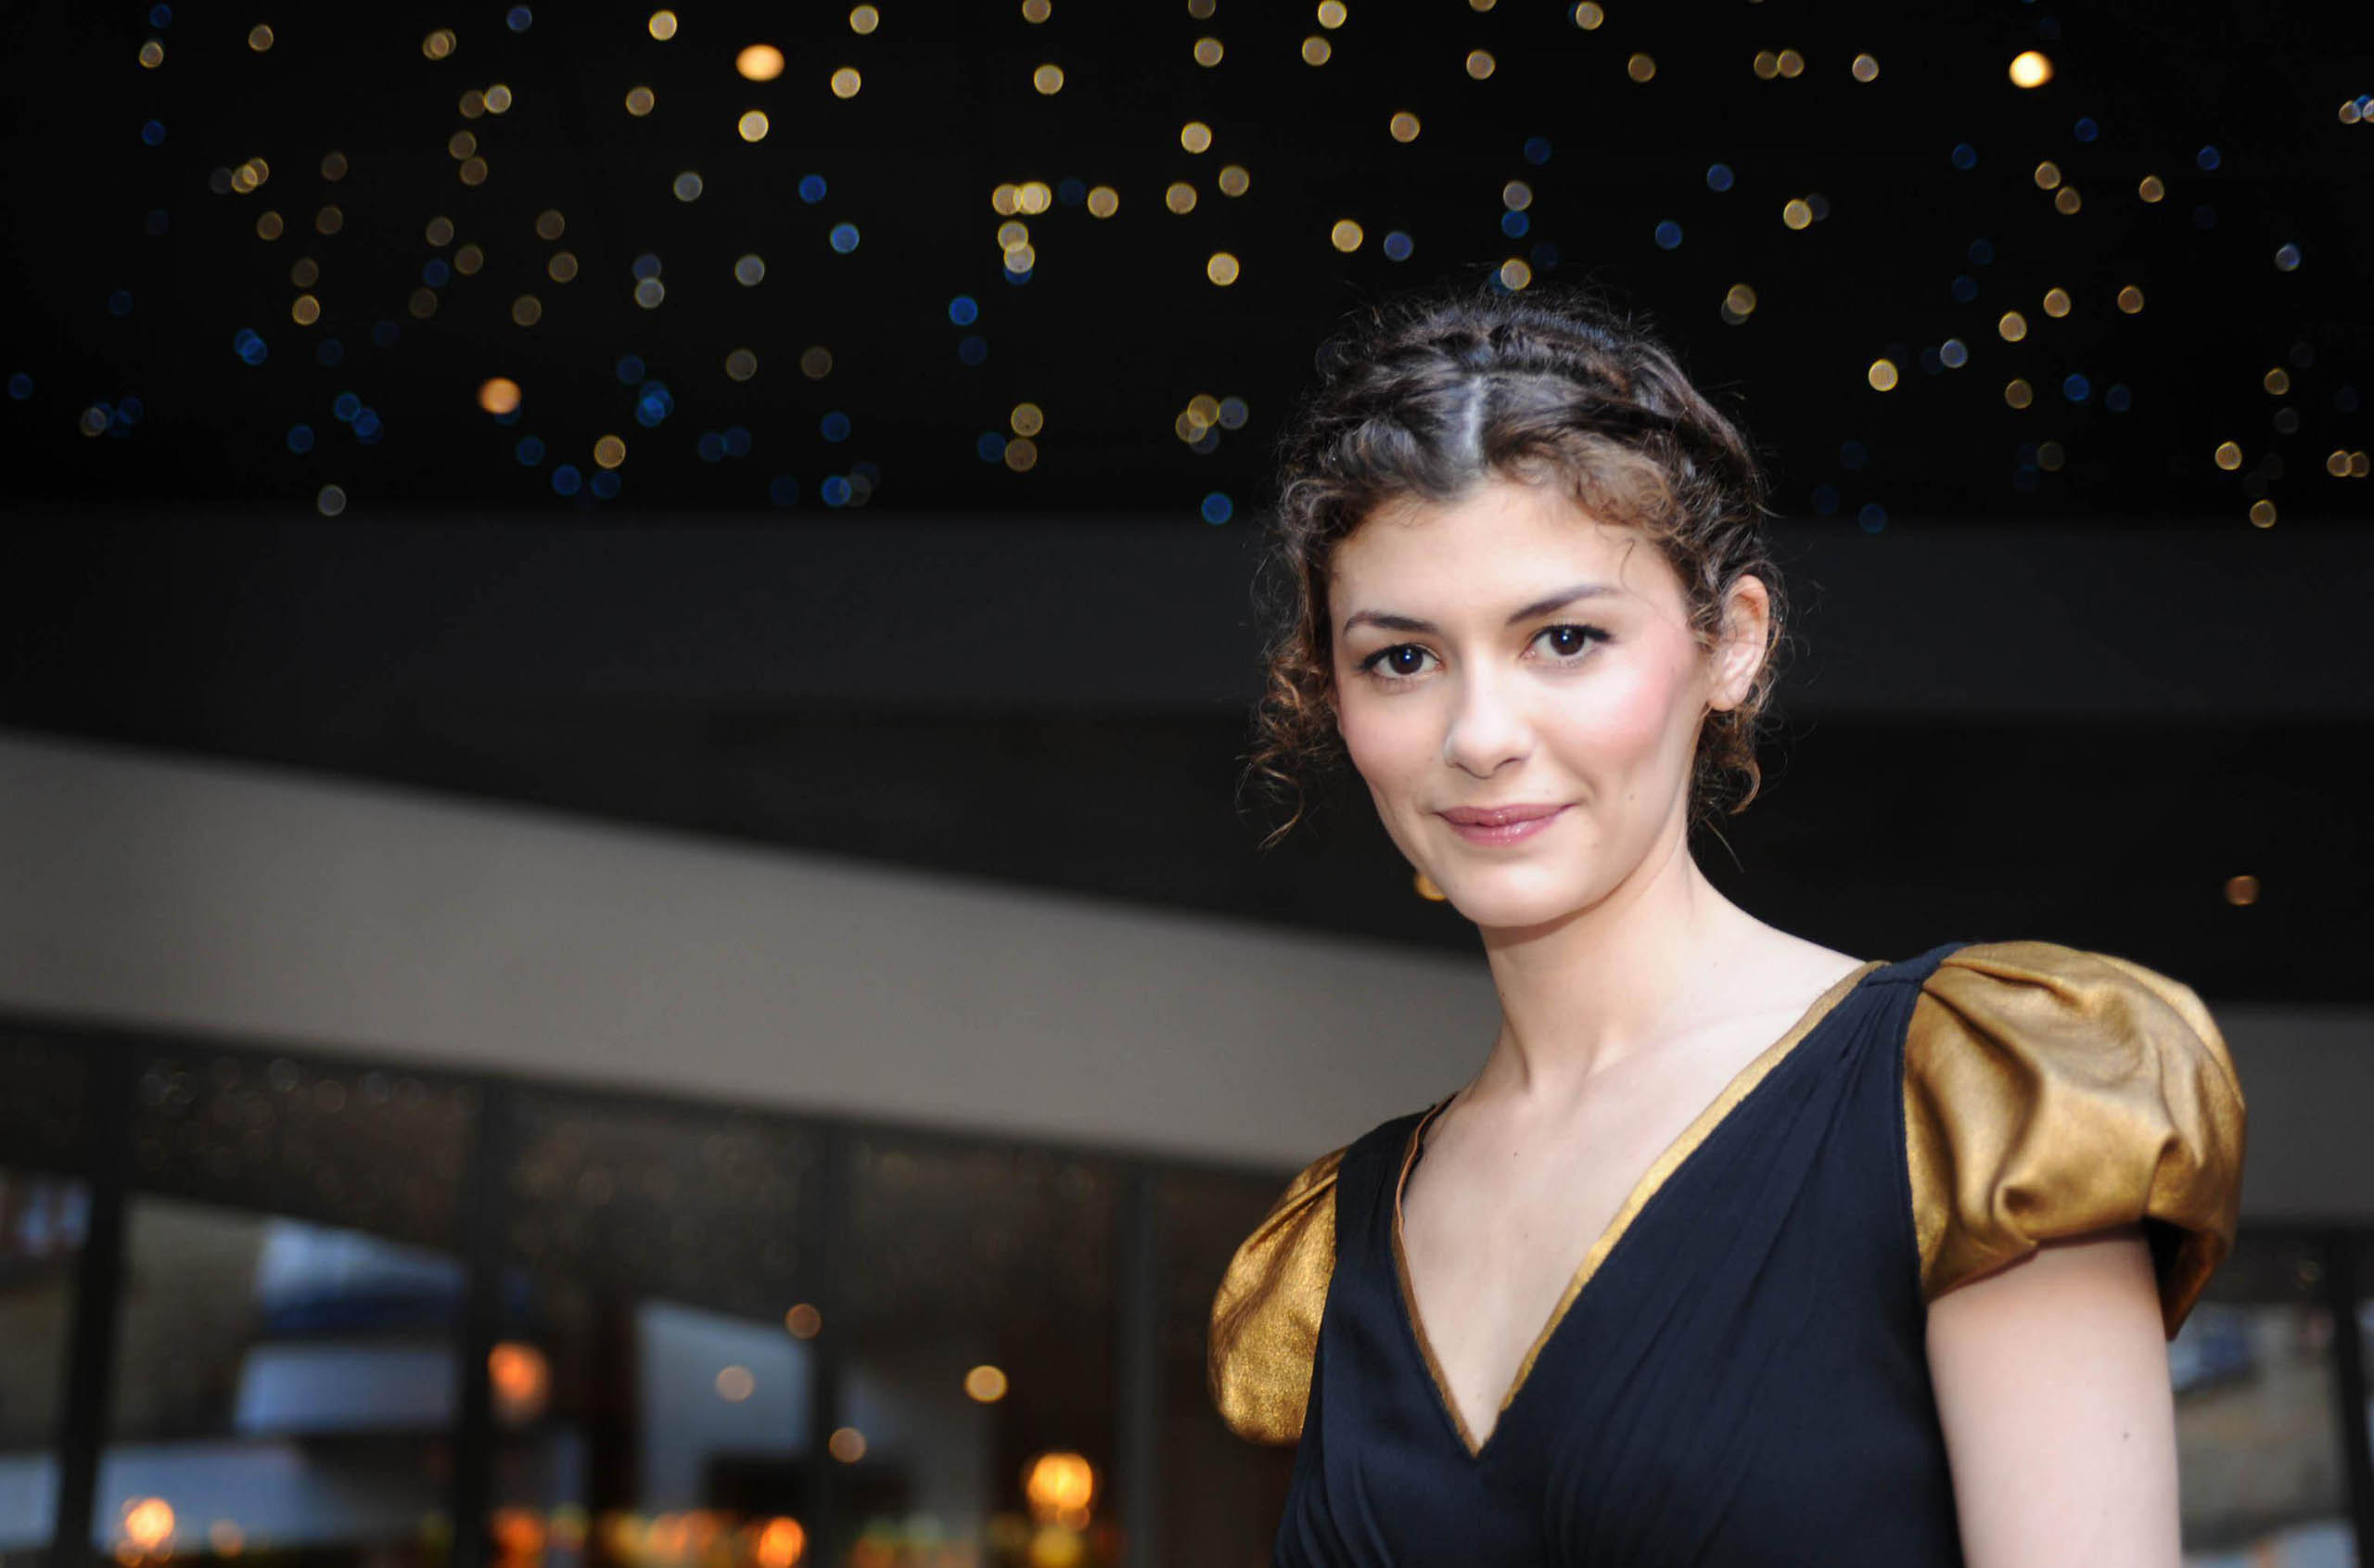 audrey tautou celebrity hd wallpaper 53024